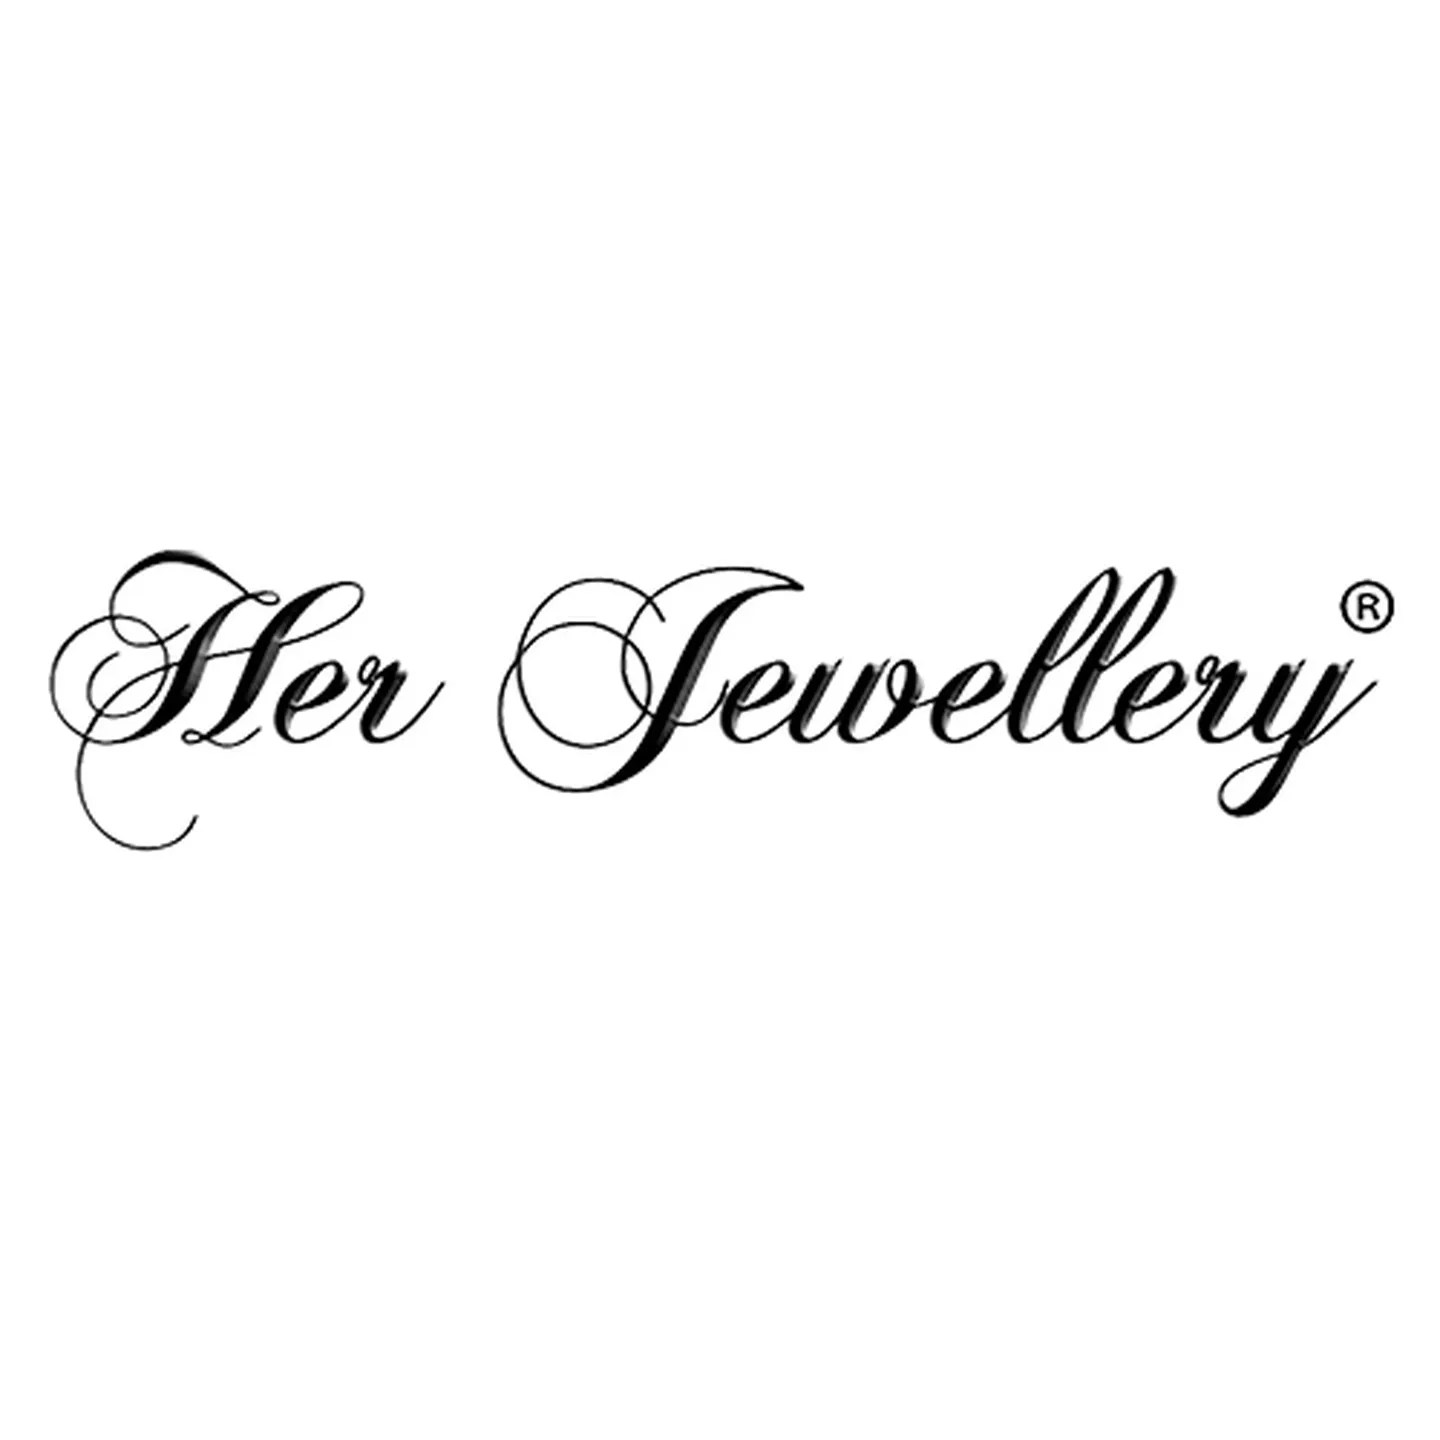 Her Jewellery is hiring a General Admin in Singapore!